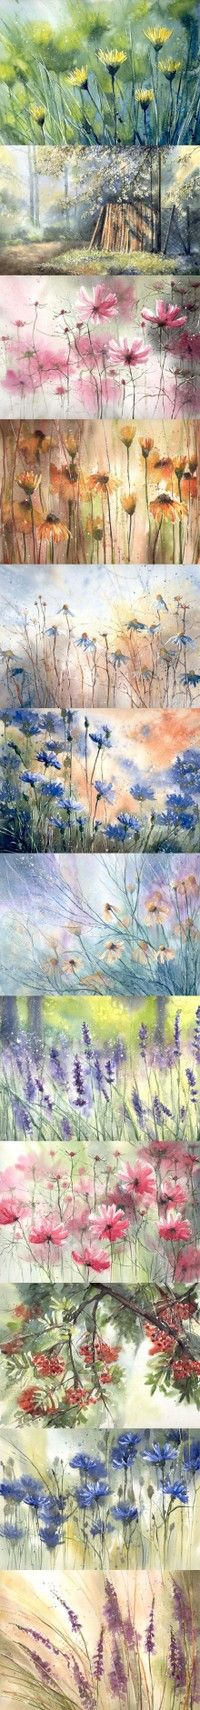 Strip of flowers by Malgorzata Szczecinska